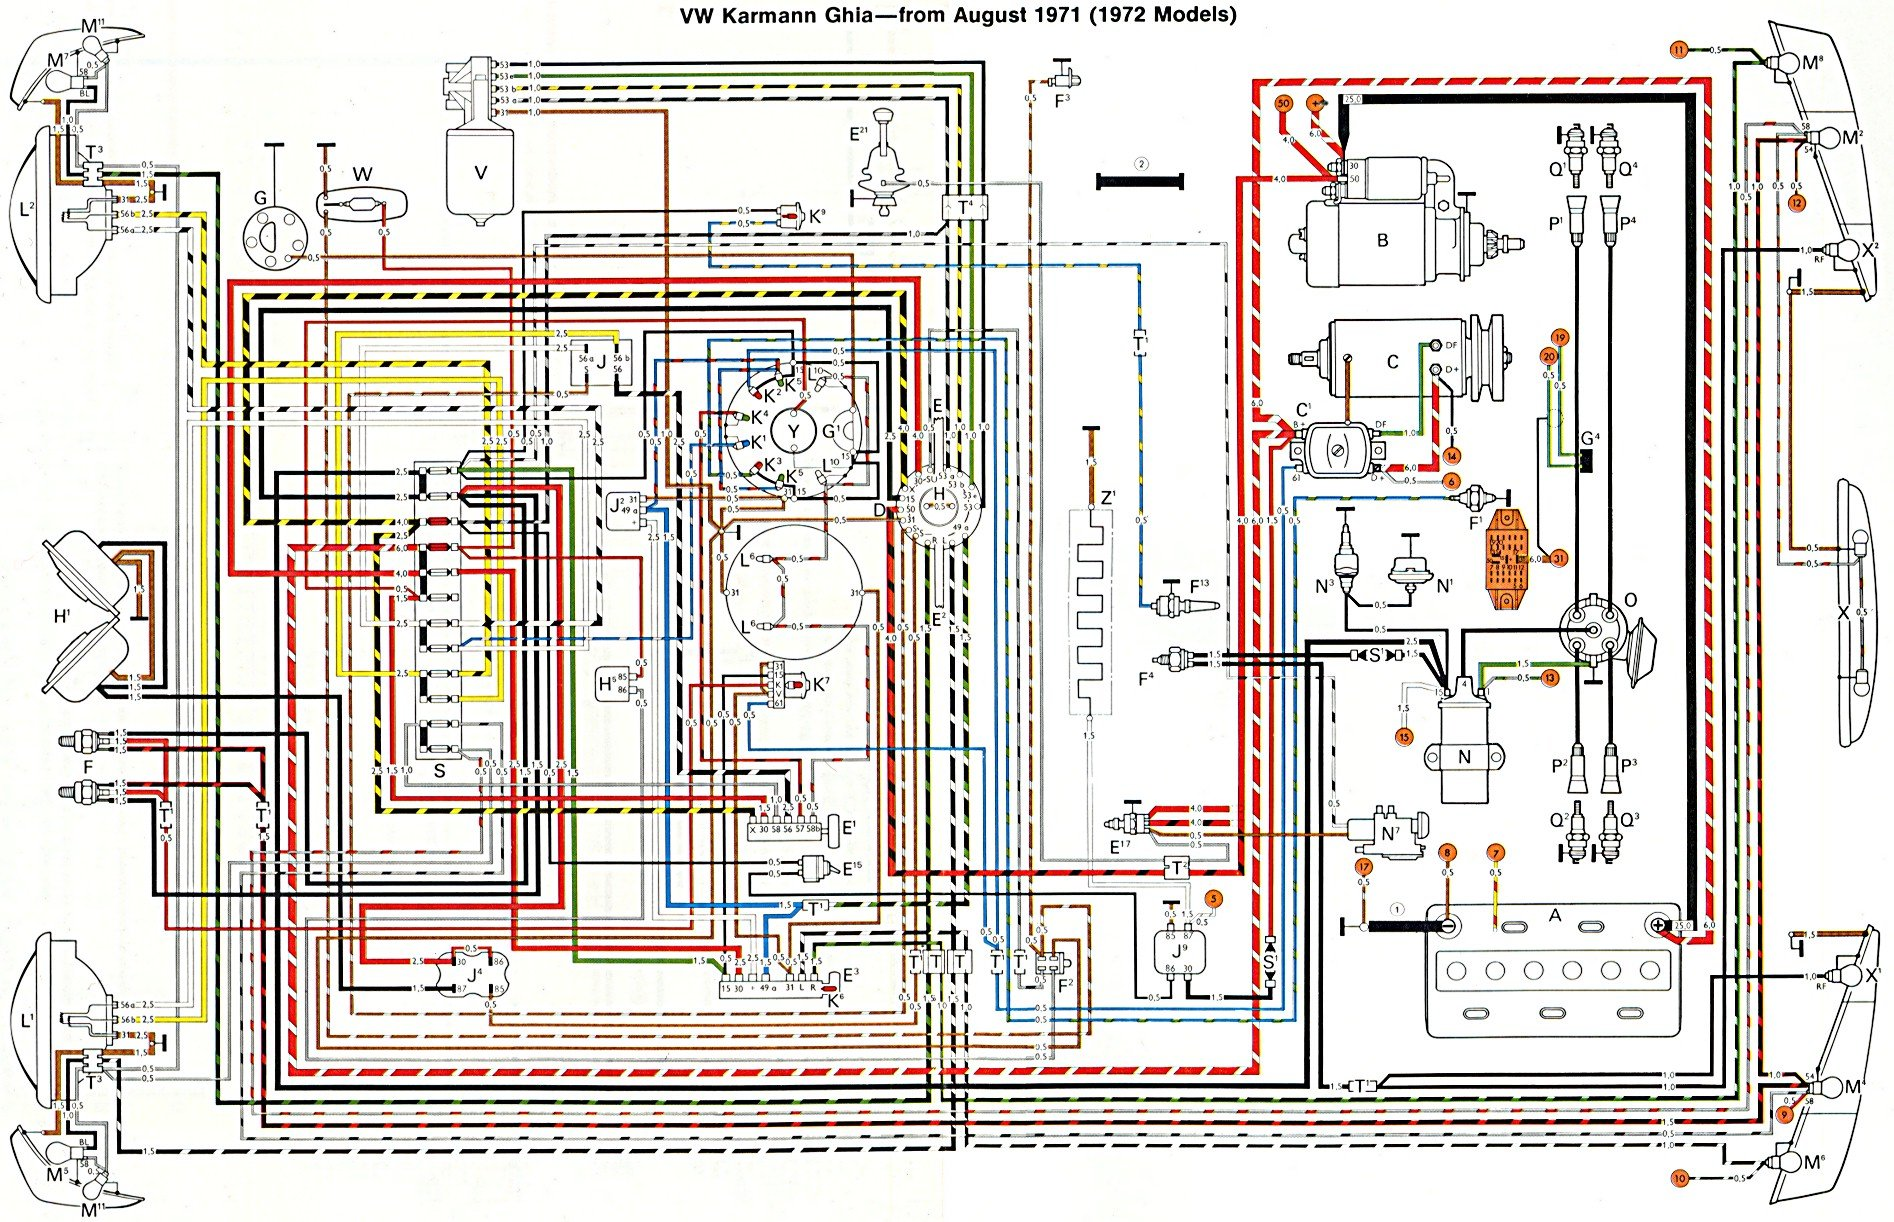 72ghia thesamba com karmann ghia wiring diagrams Basic Electrical Wiring Diagrams at bayanpartner.co